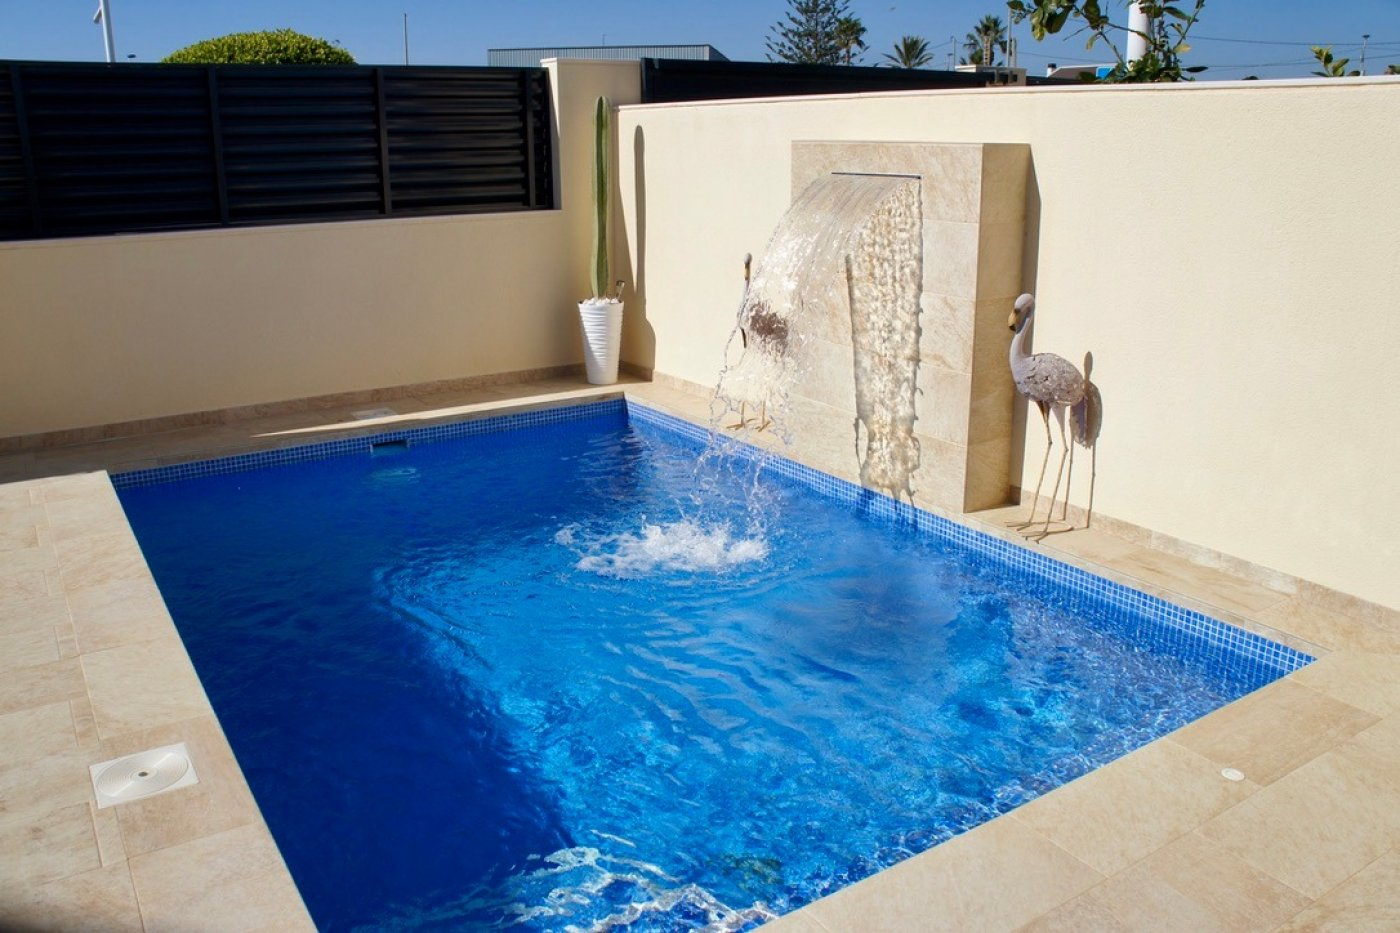 Gallery Image 21 of Key ready detached  3 bed, 3 bath villa with swimming pool at a very competitive price